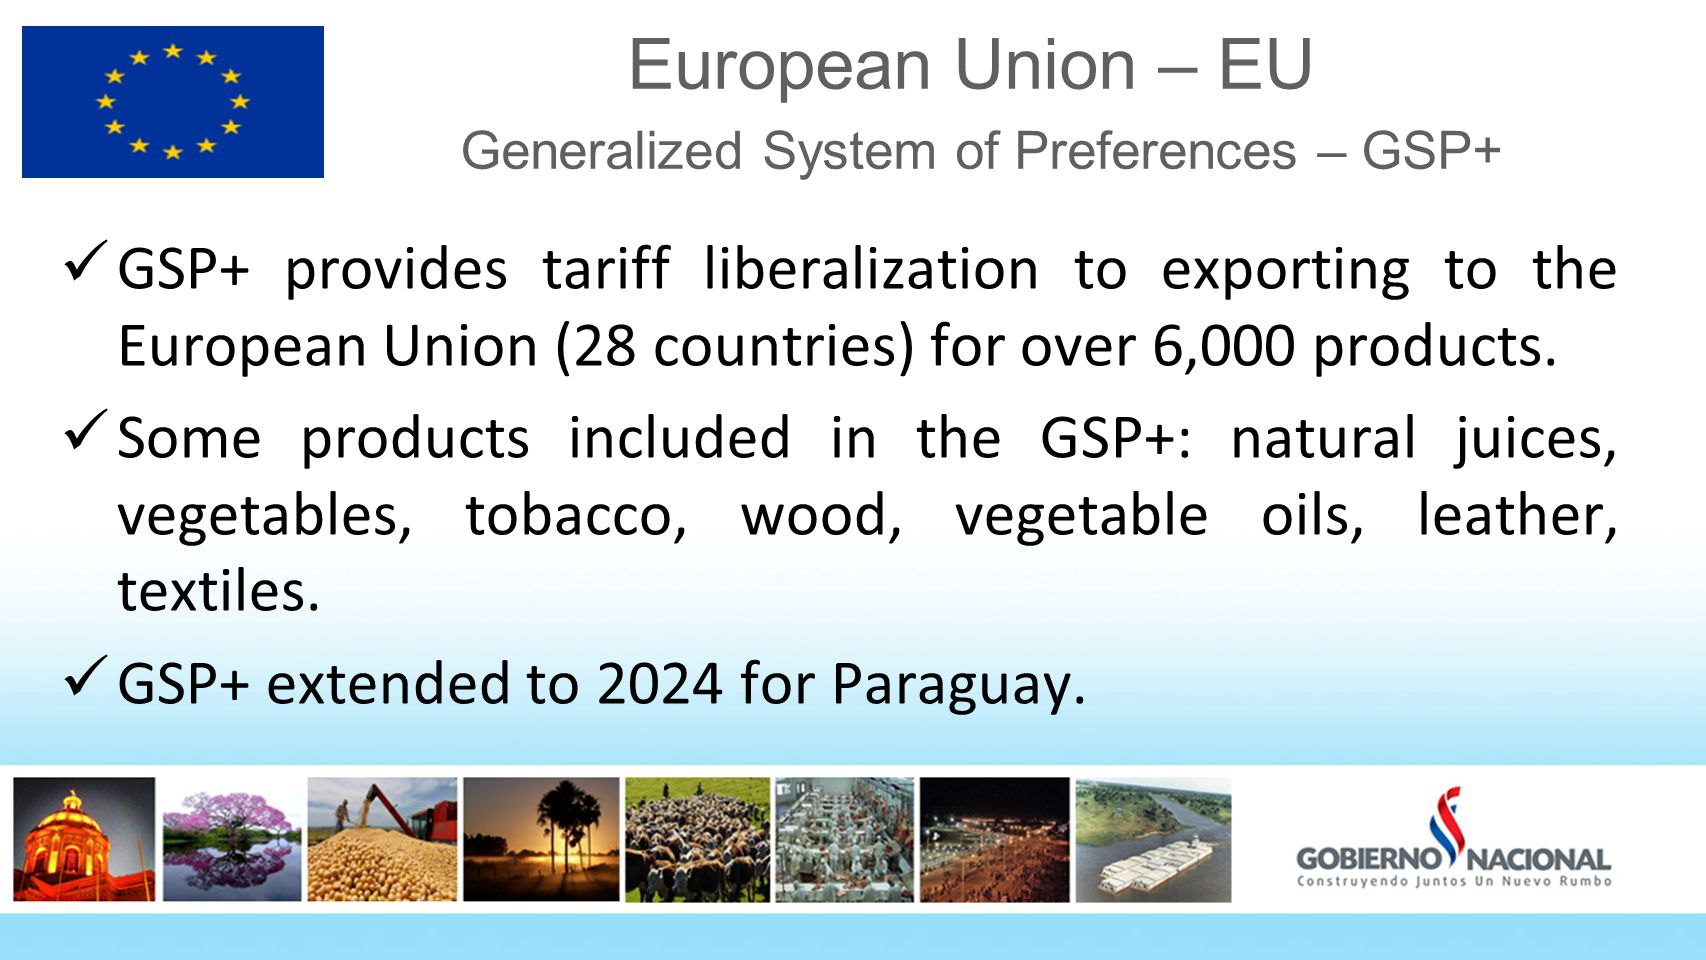 European Union – EU Generalized System of Preferences – GSP+ GSP+ provides tariff liberalization to exporting to the European Union (28 countries) for over 6,000 products.